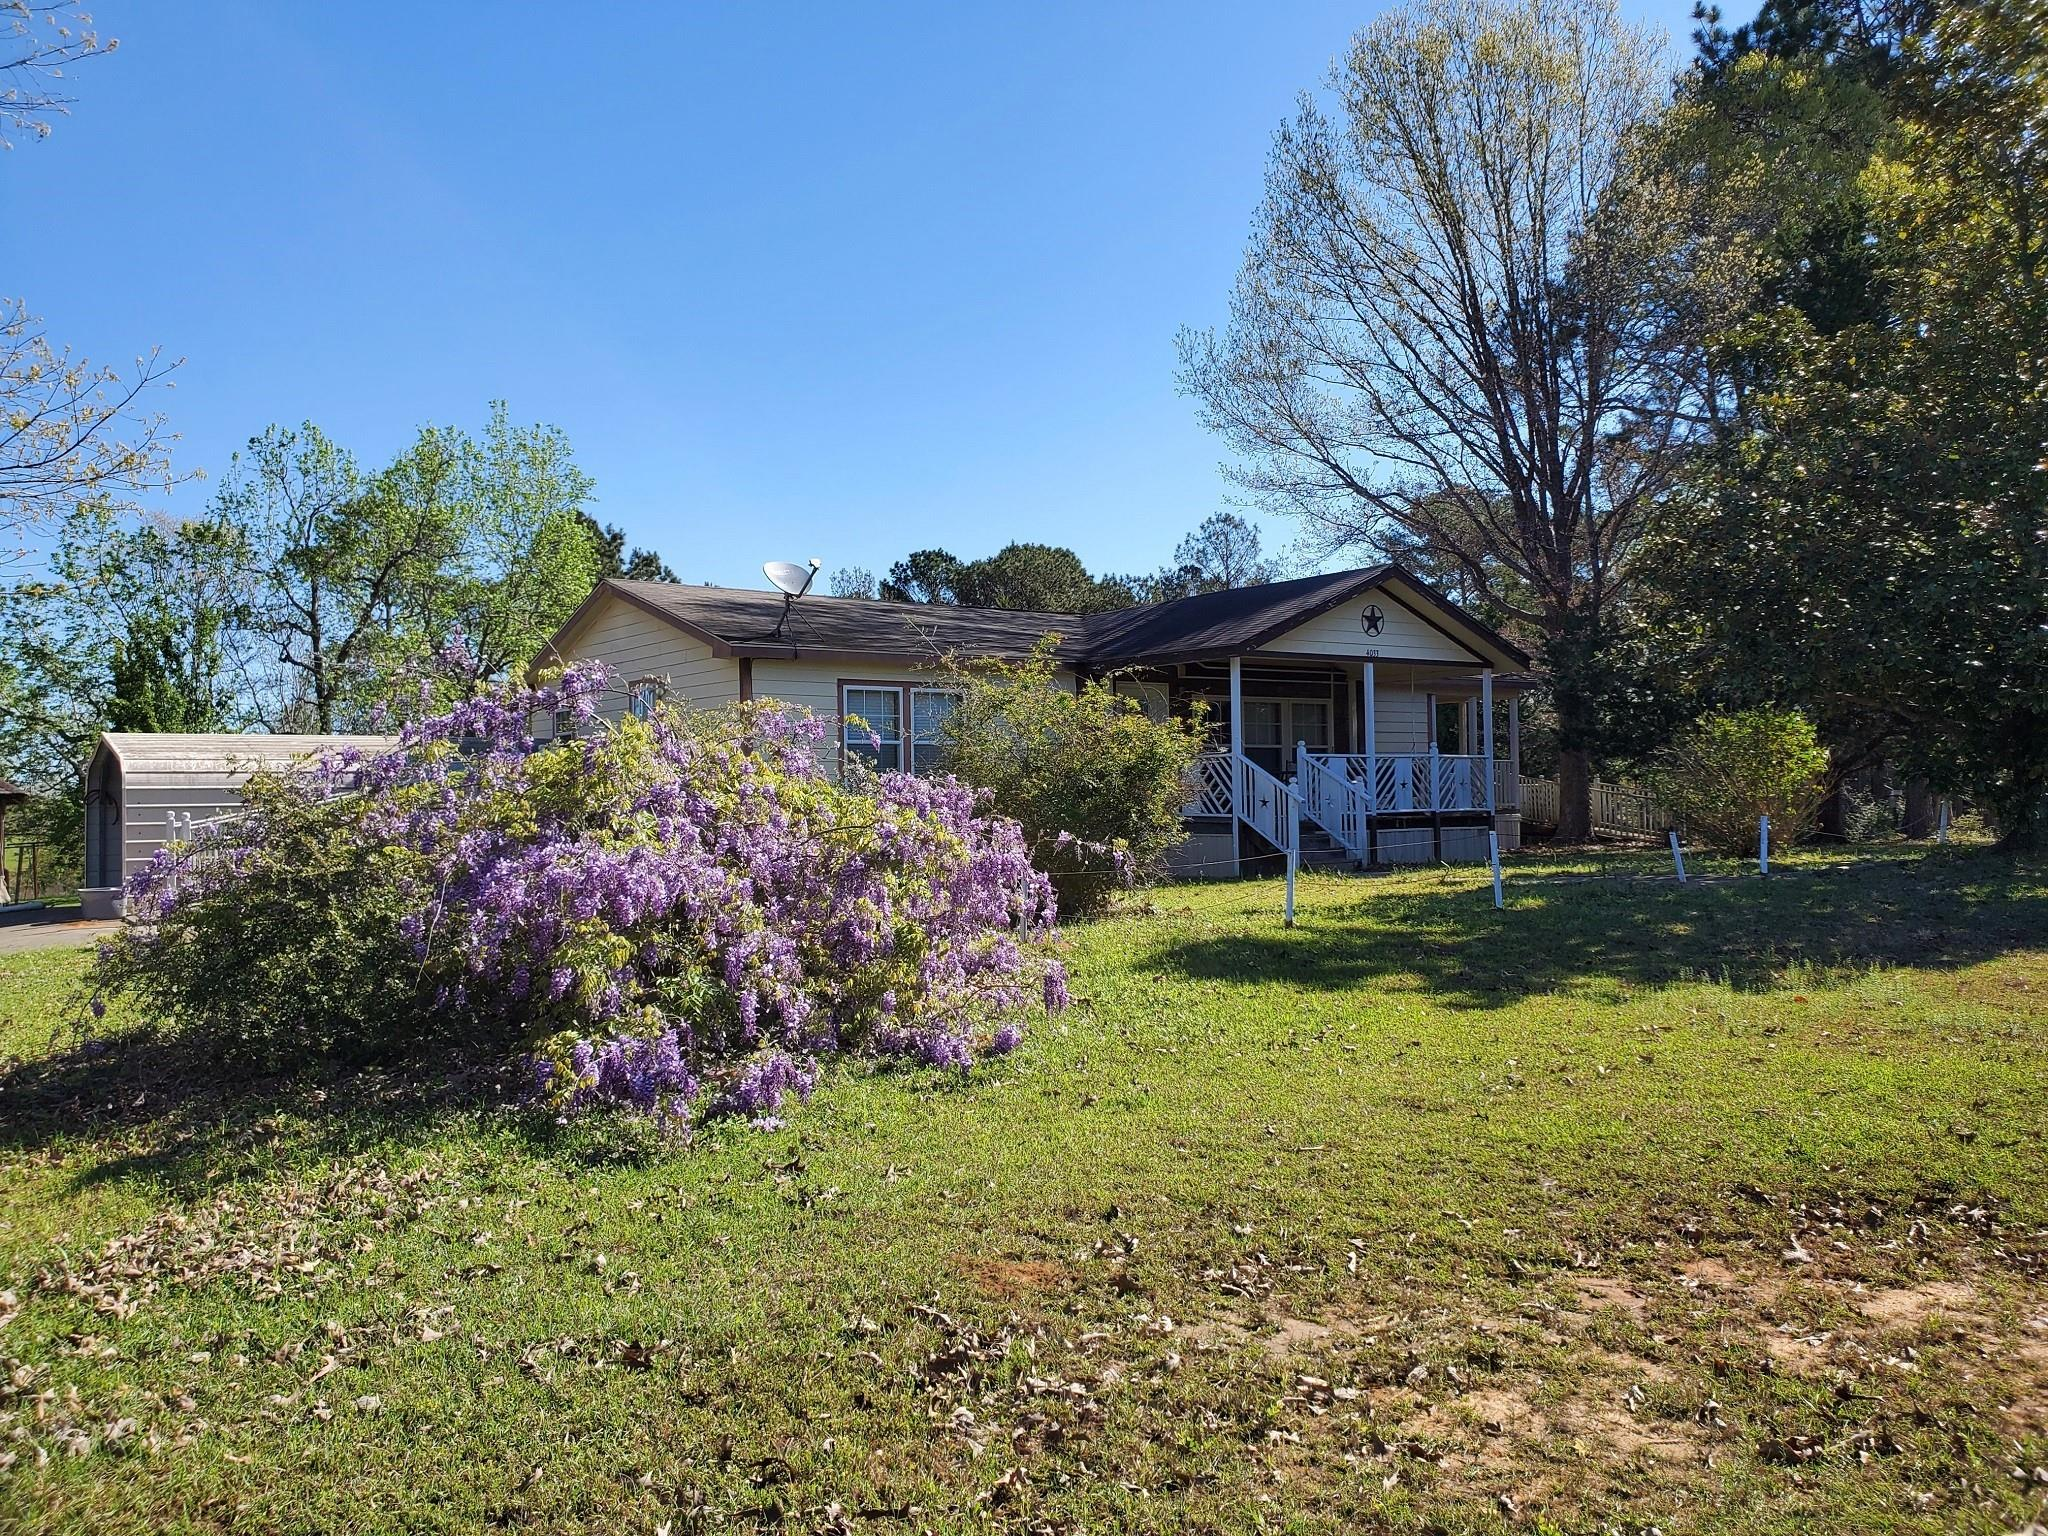 4033 Fm 256 E Property Photo - Colmesneil, TX real estate listing